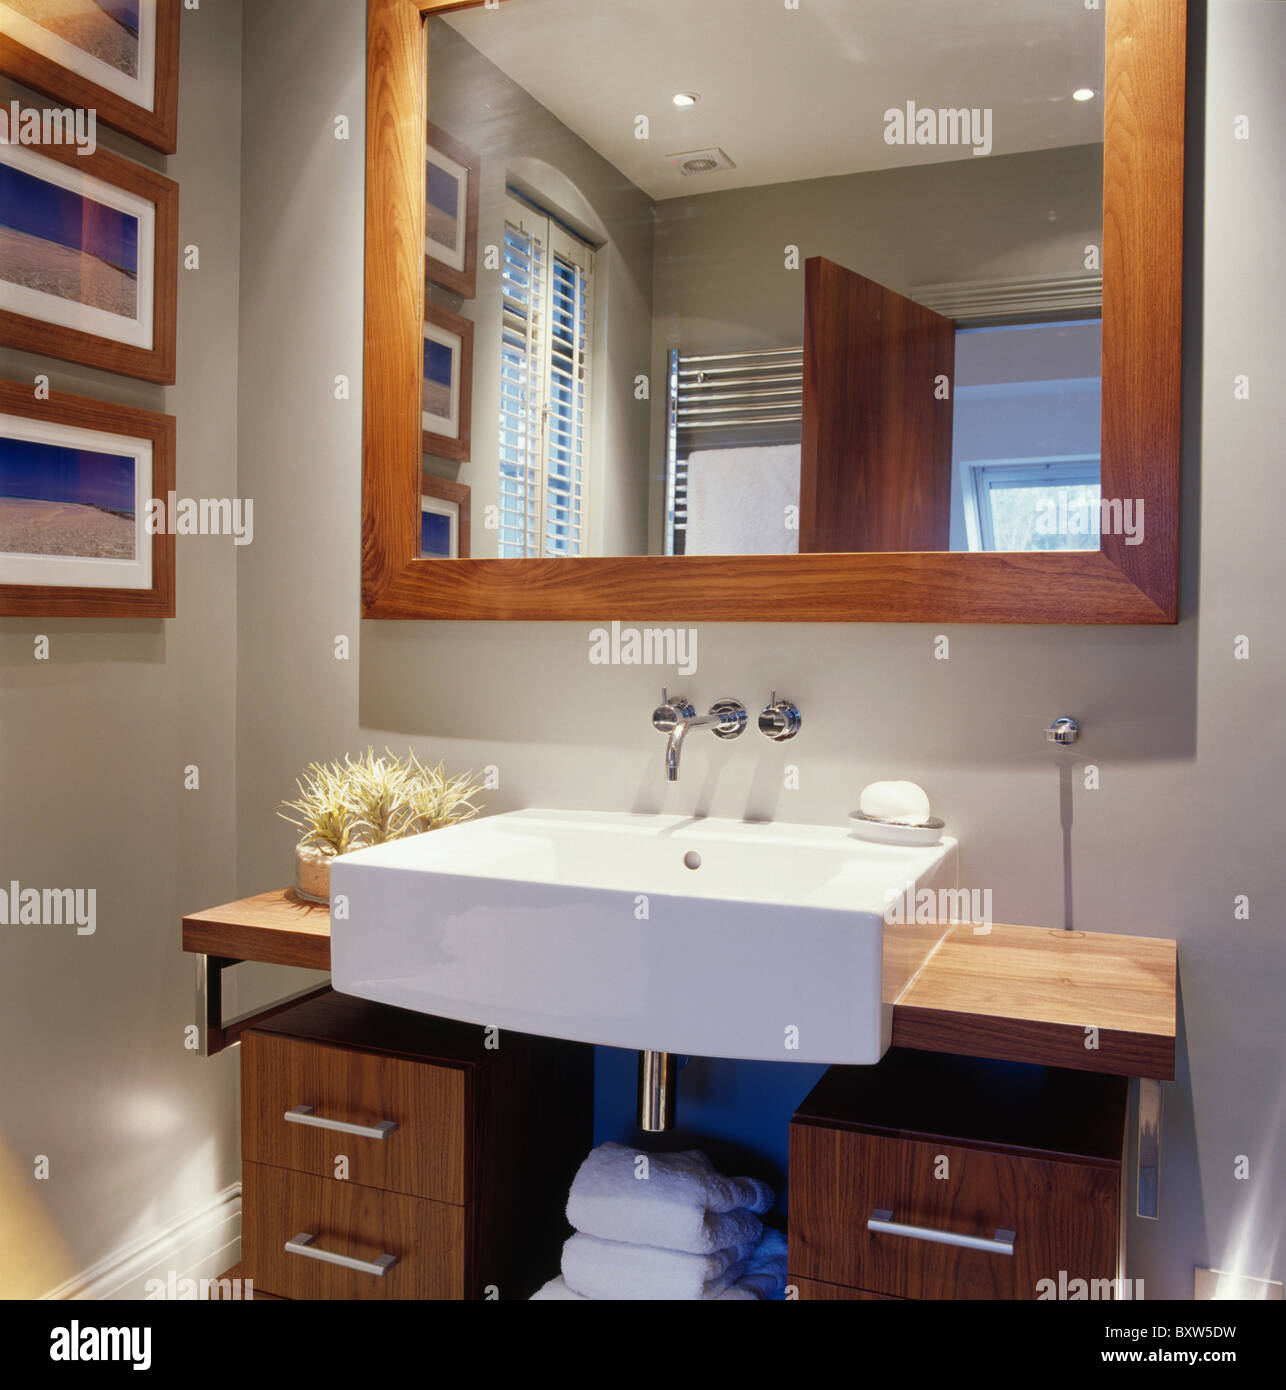 Large Wooden Framed Mirror Above Rectangular White Basin On Wood Stock Photo Alamy